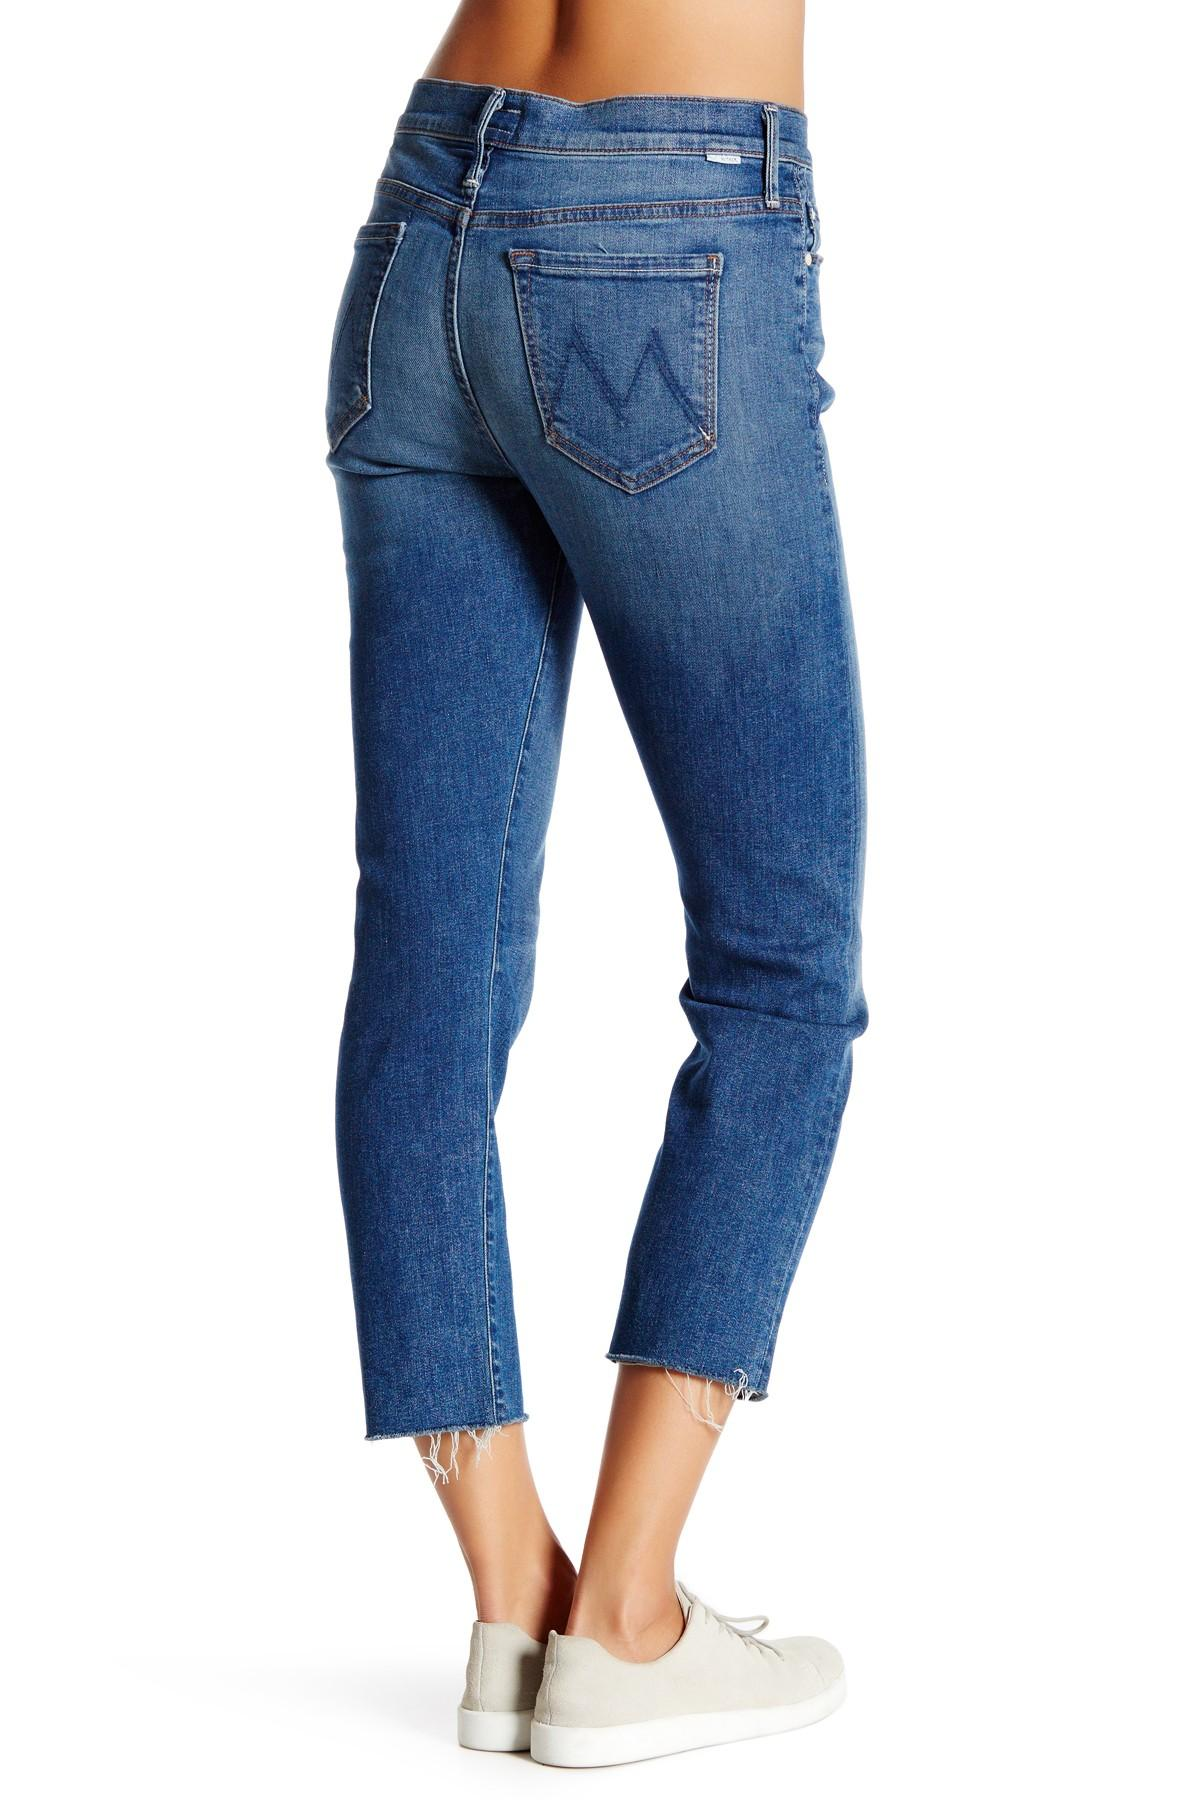 8724c33c31a1e6 Lyst - Mother The Vagabond Crop Fray Jean in Blue